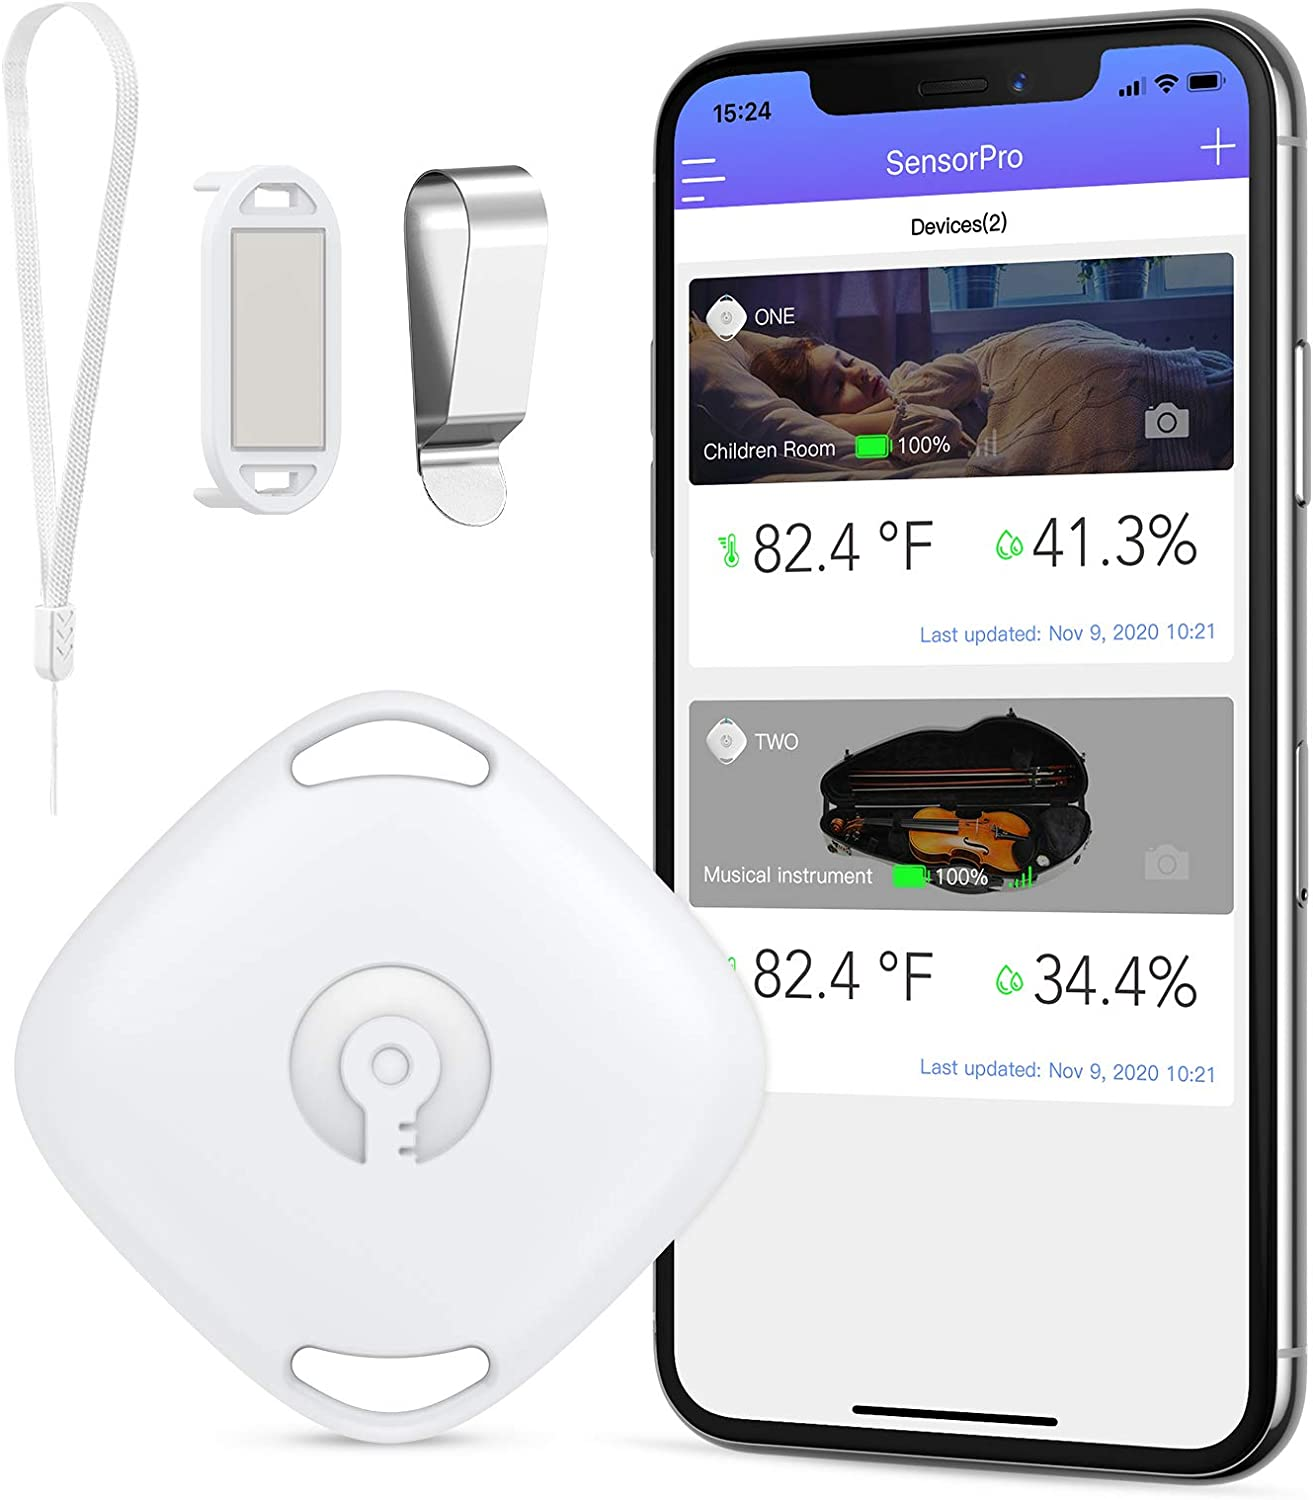 ORIA Bluetooth Room Temperature Monitor, LCD Bluetooth Humidity Monitor with Data Storage, Indoor Thermometer Hygrometer Gauge with Alert, Free Data Export Temp Humidity Sensor for Home Greenhouse